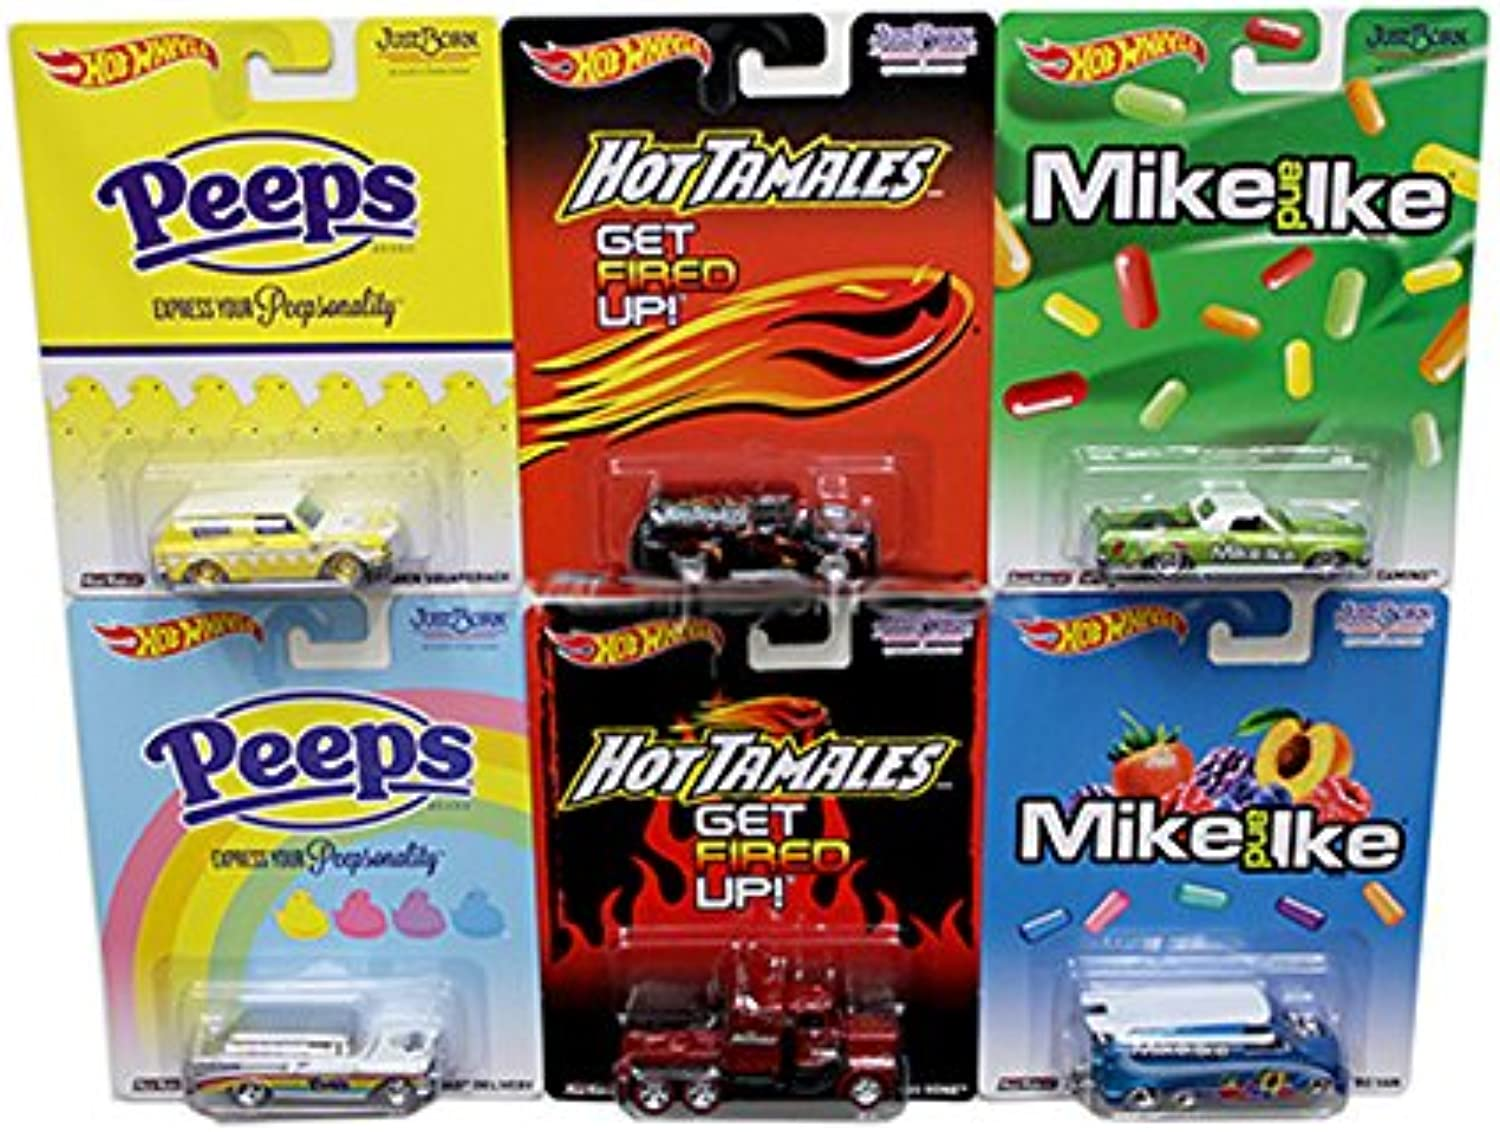 HOT WHEELS 1 64 POP CULTURE 2014 JUST BORN CANDY CASE N ASSORTMENT 6PCS X8308956N